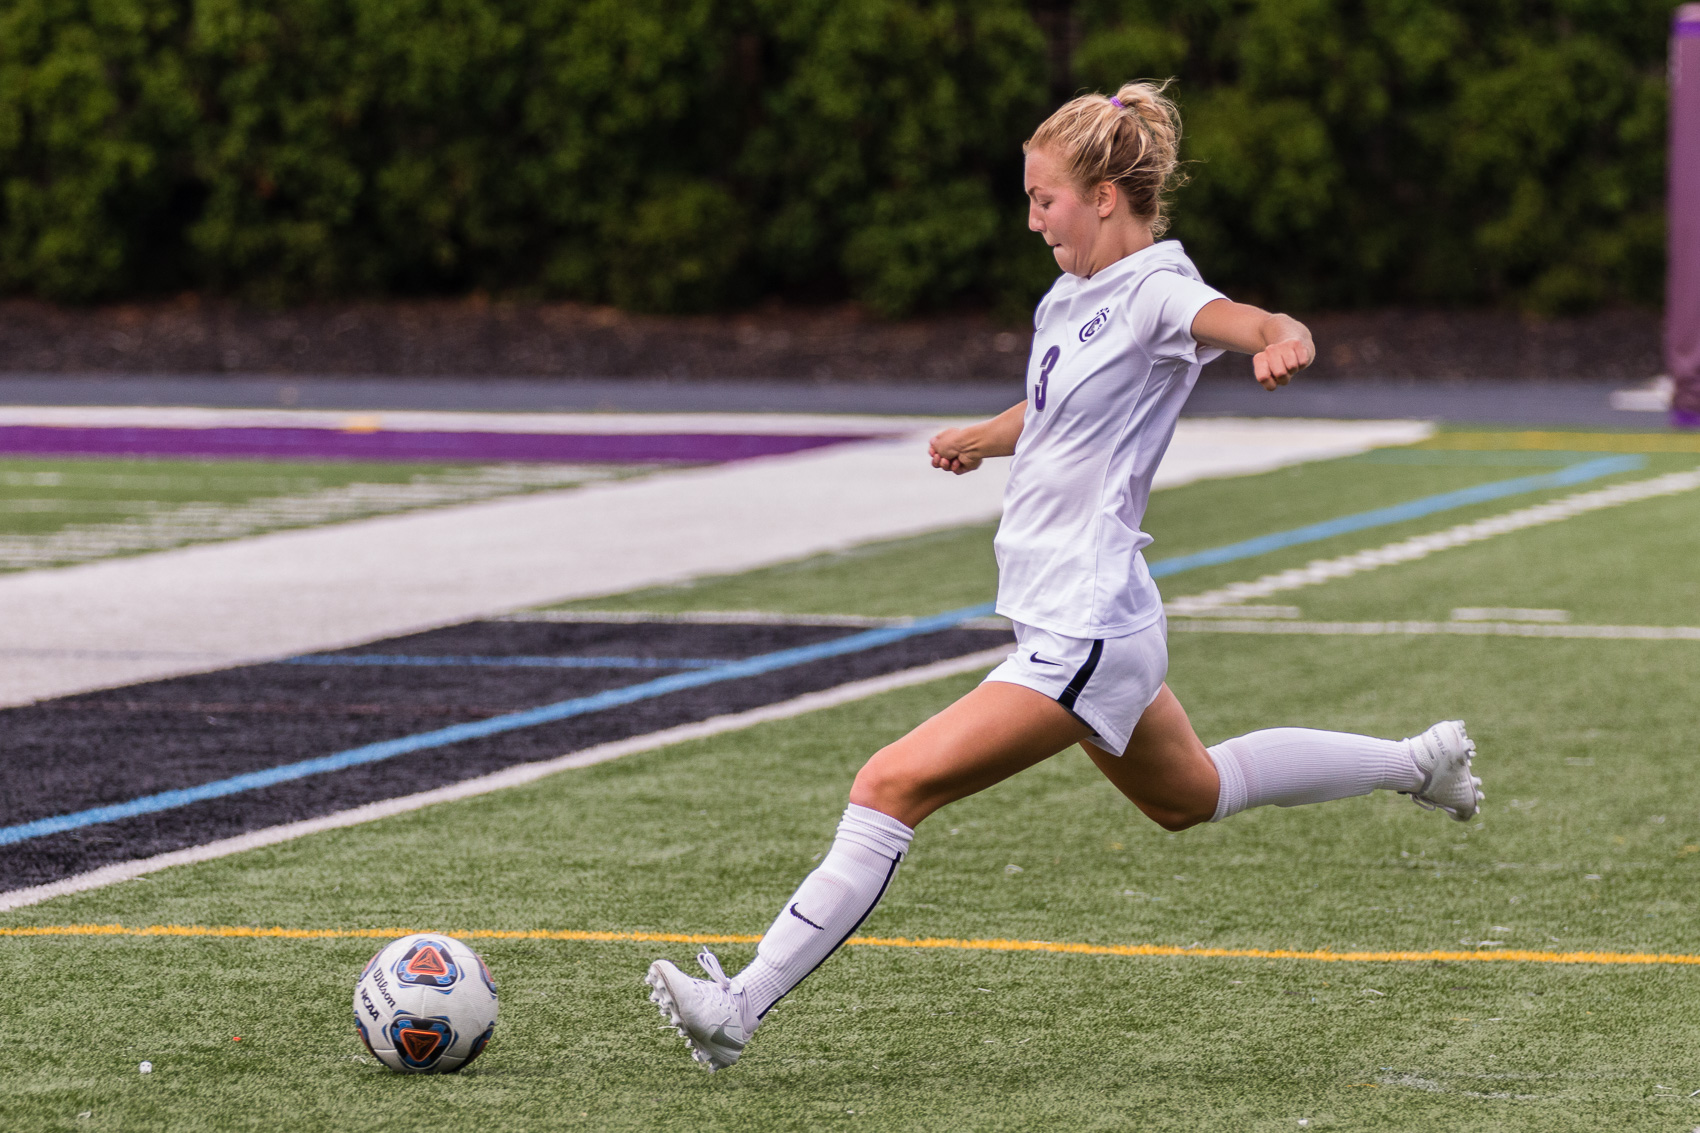 Leaving Division I: Why women's soccer players chose to leave Division I schools for Division III